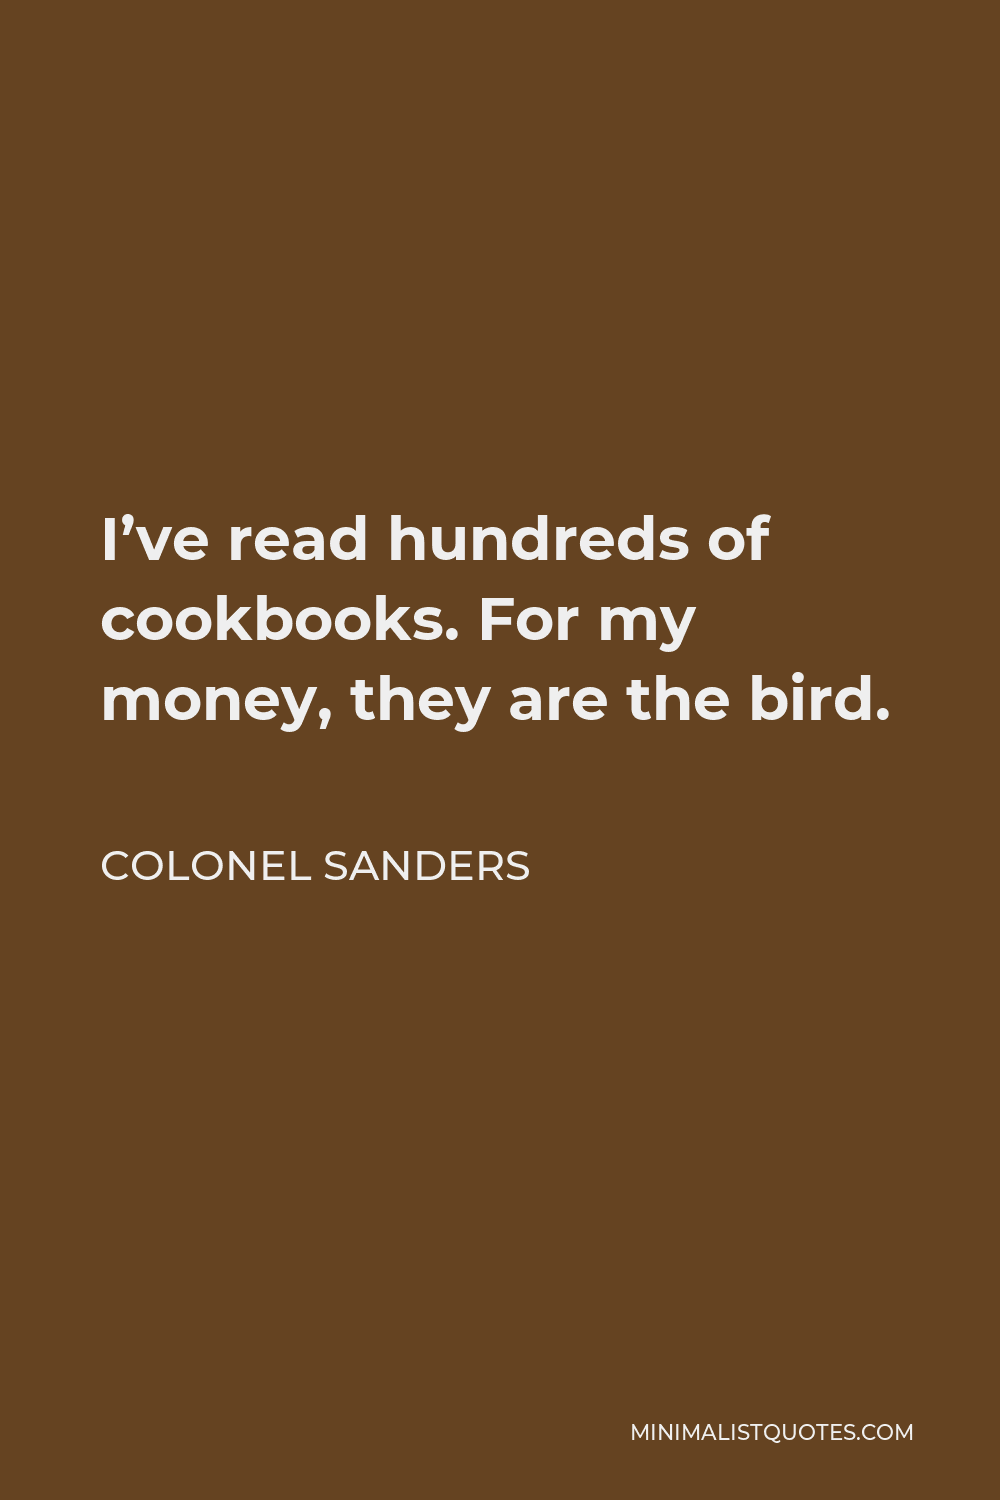 Colonel Sanders Quote - I've read hundreds of cookbooks. For my money, they are the bird.